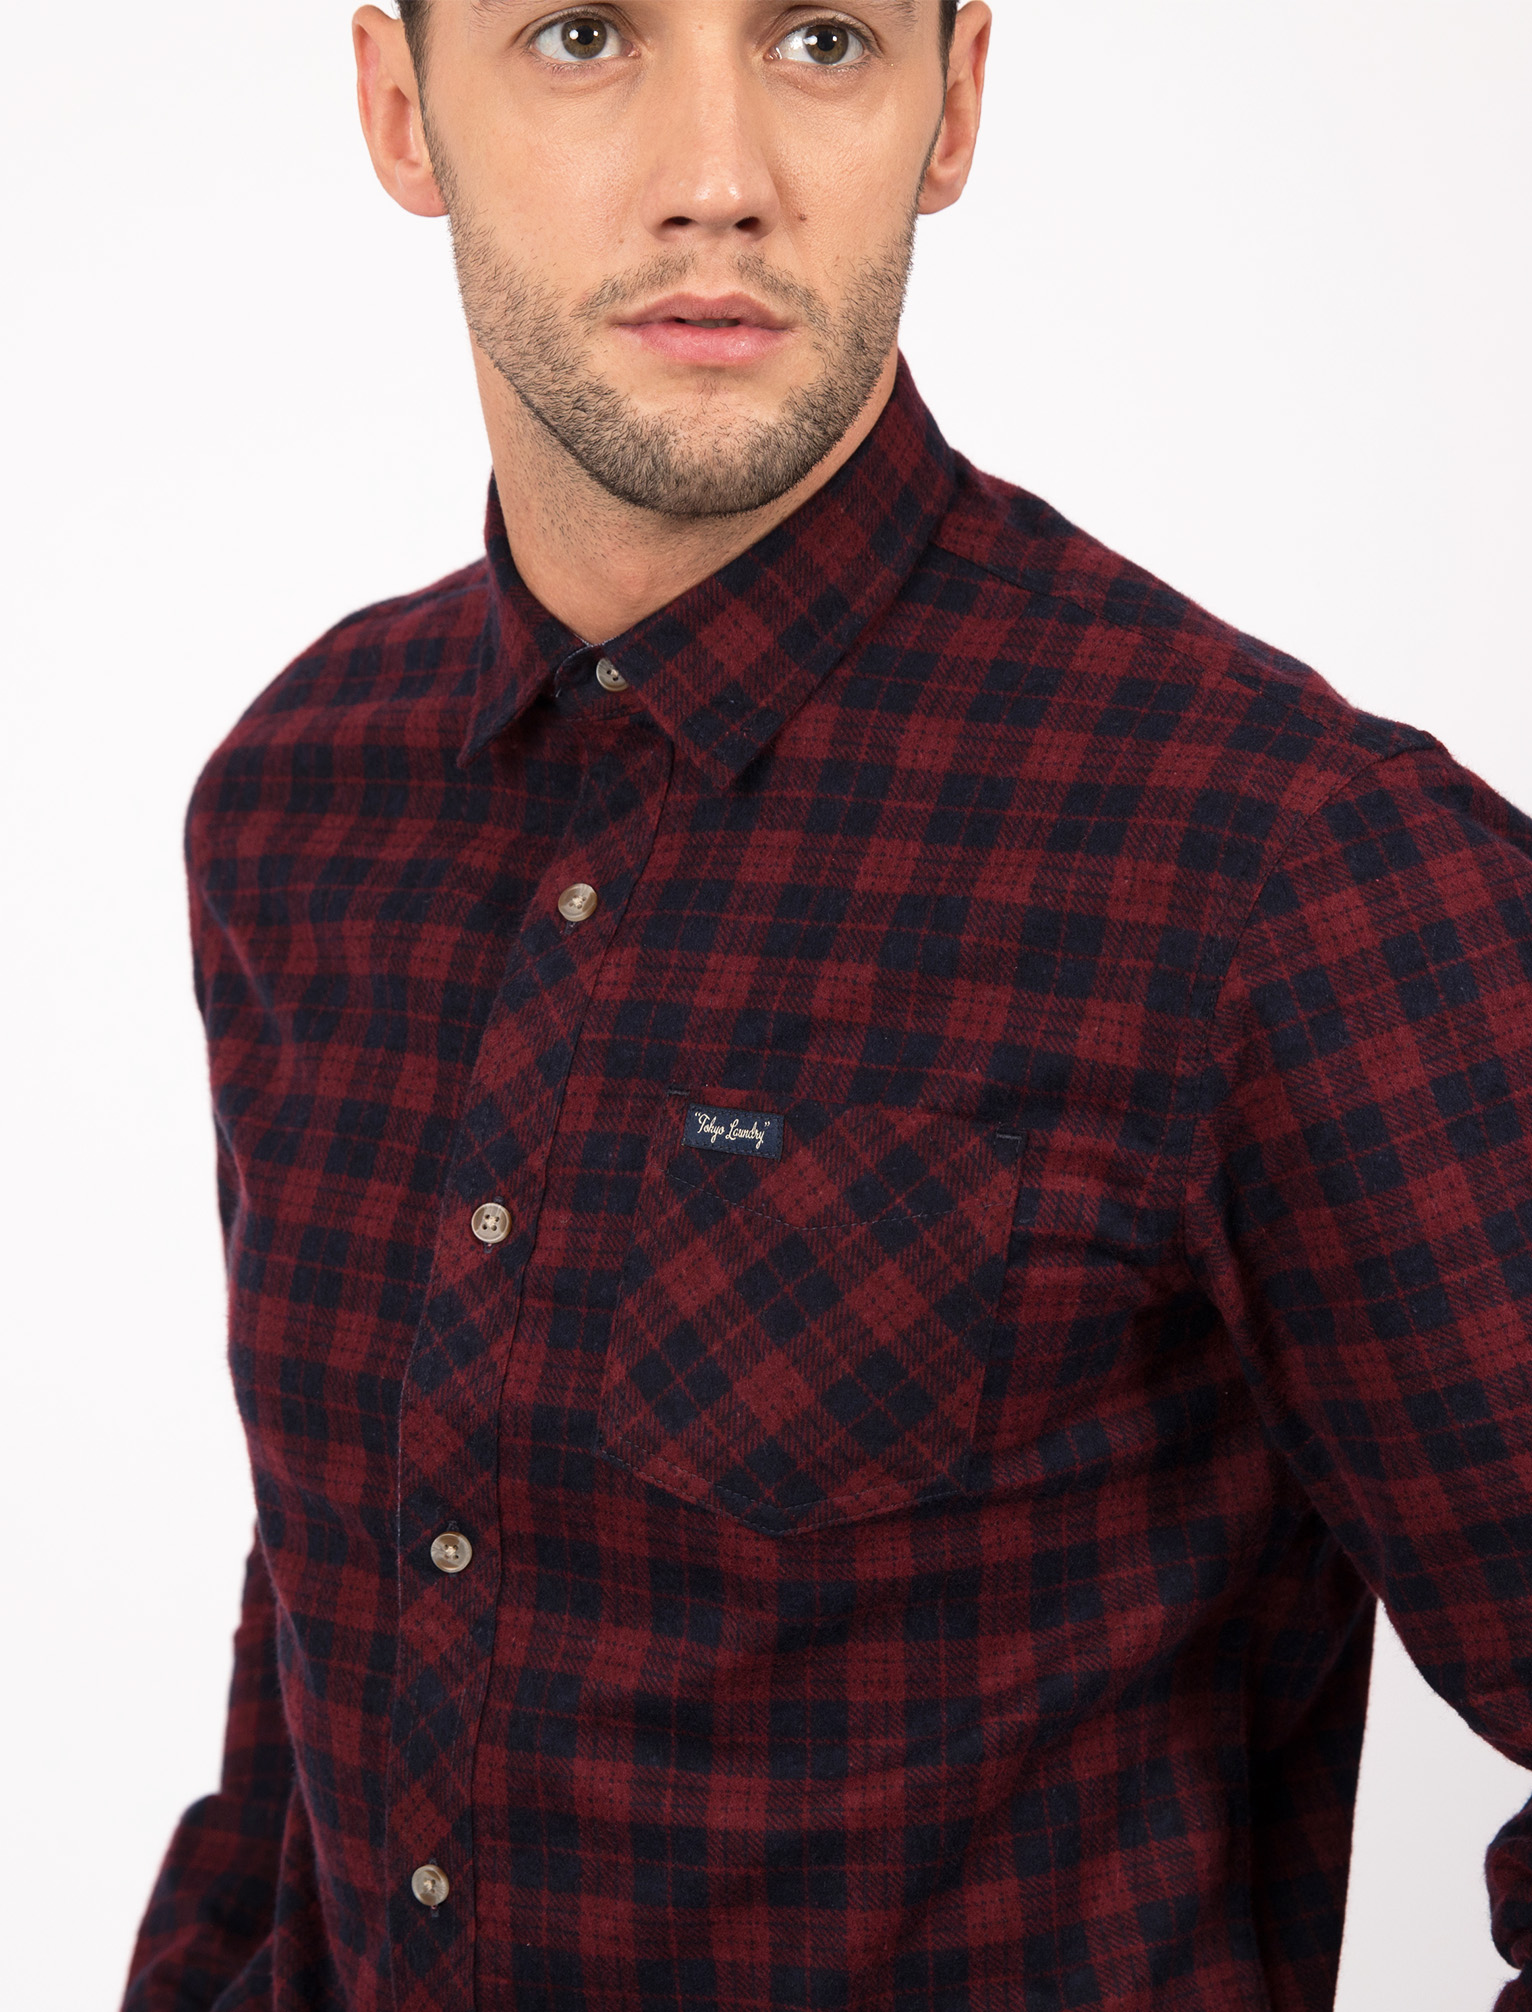 New-Mens-Tokyo-Laundry-Cotton-Long-Sleeve-Checked-Flannel-Shirt-Size-S-XL thumbnail 19